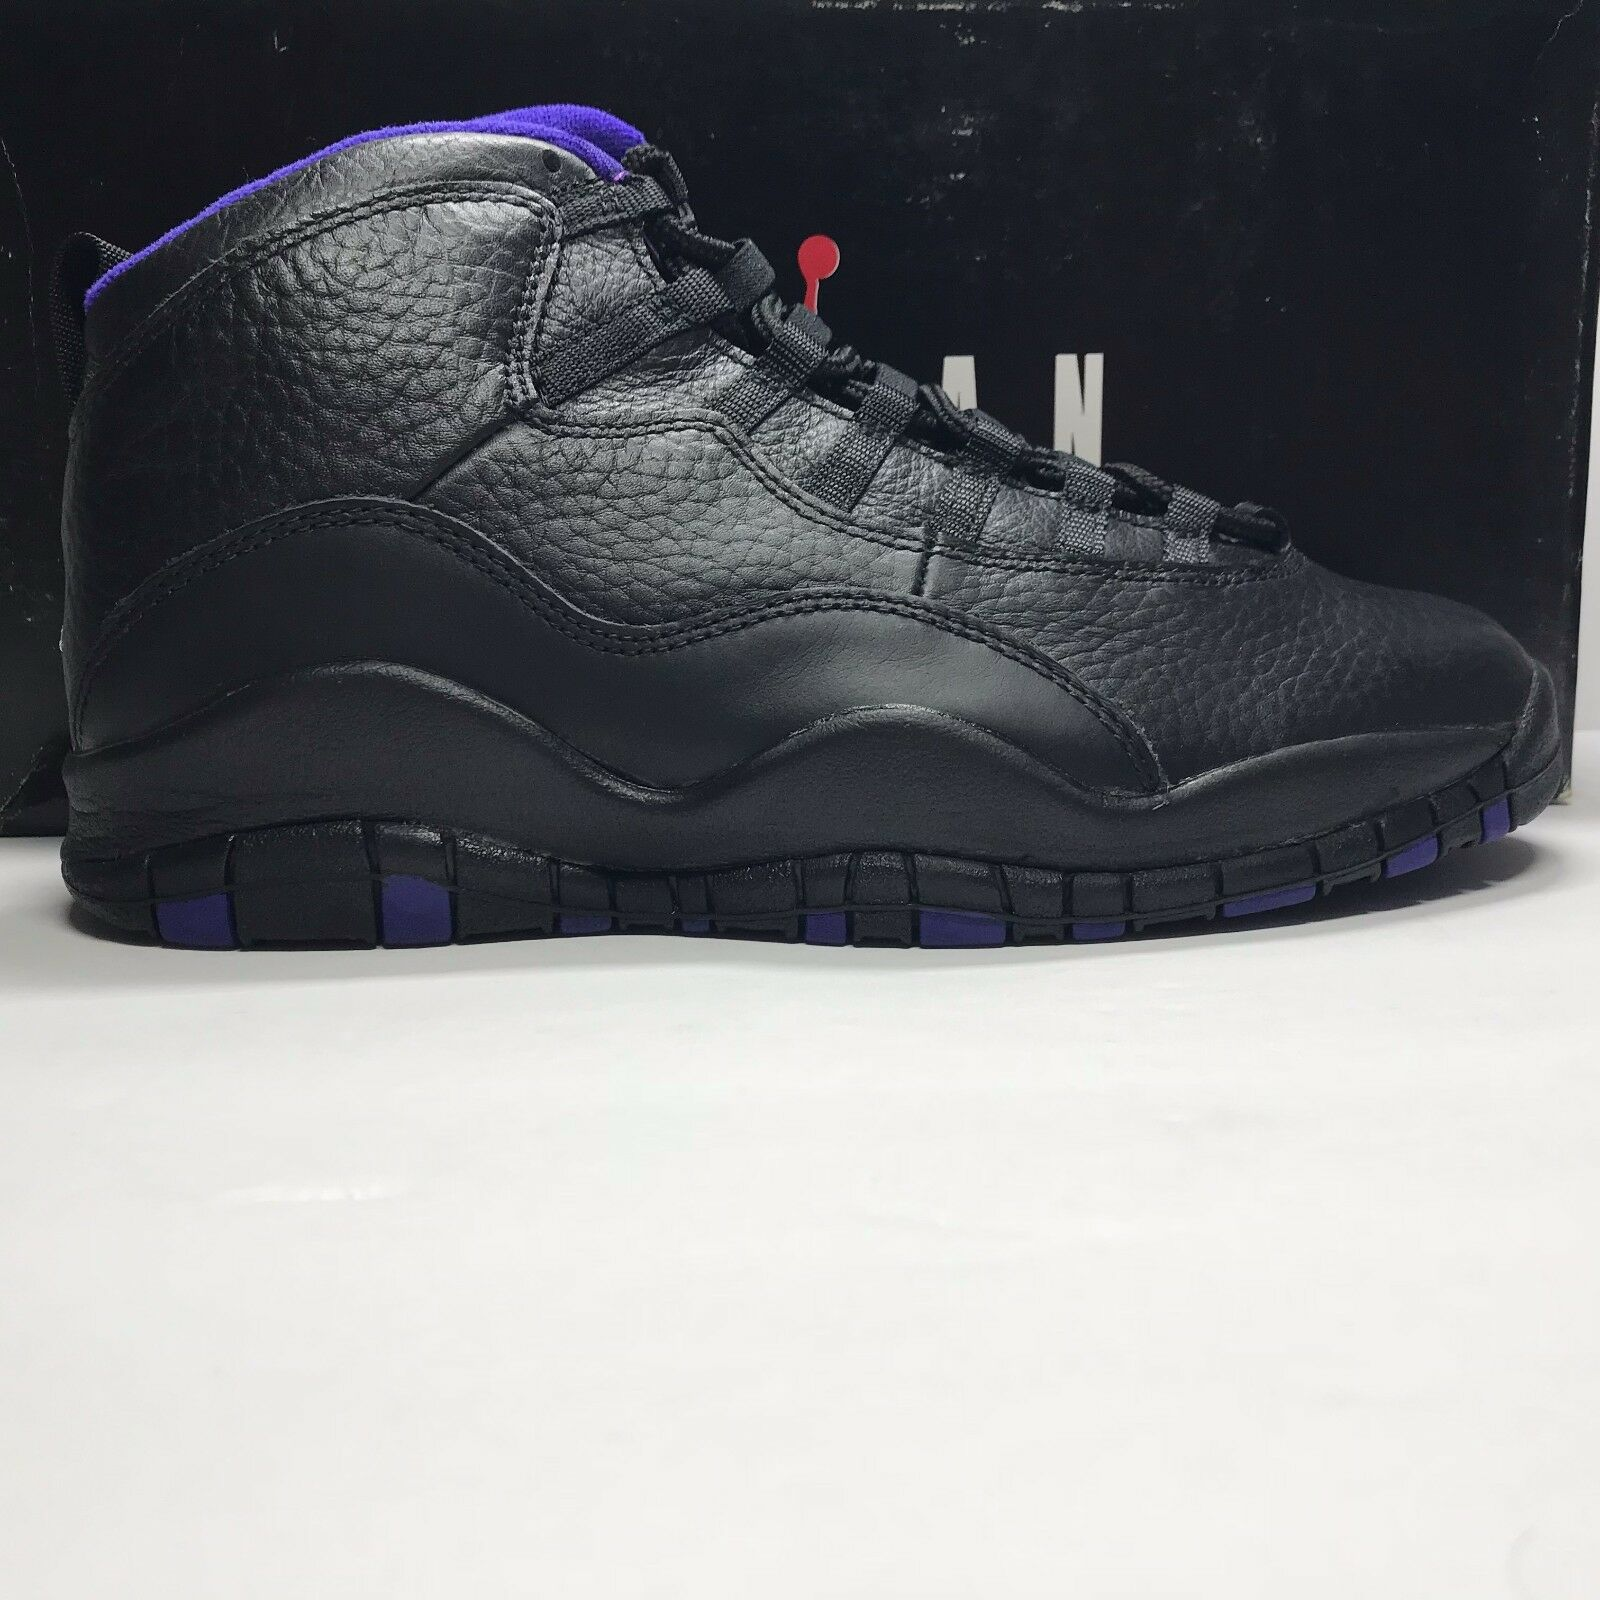 c7ceceef0716 DS OG Nike Air Jordan 10 X City Pack Sacramento Kings Size 8.5 black purple  1995 1 of 8Only 1 available ...